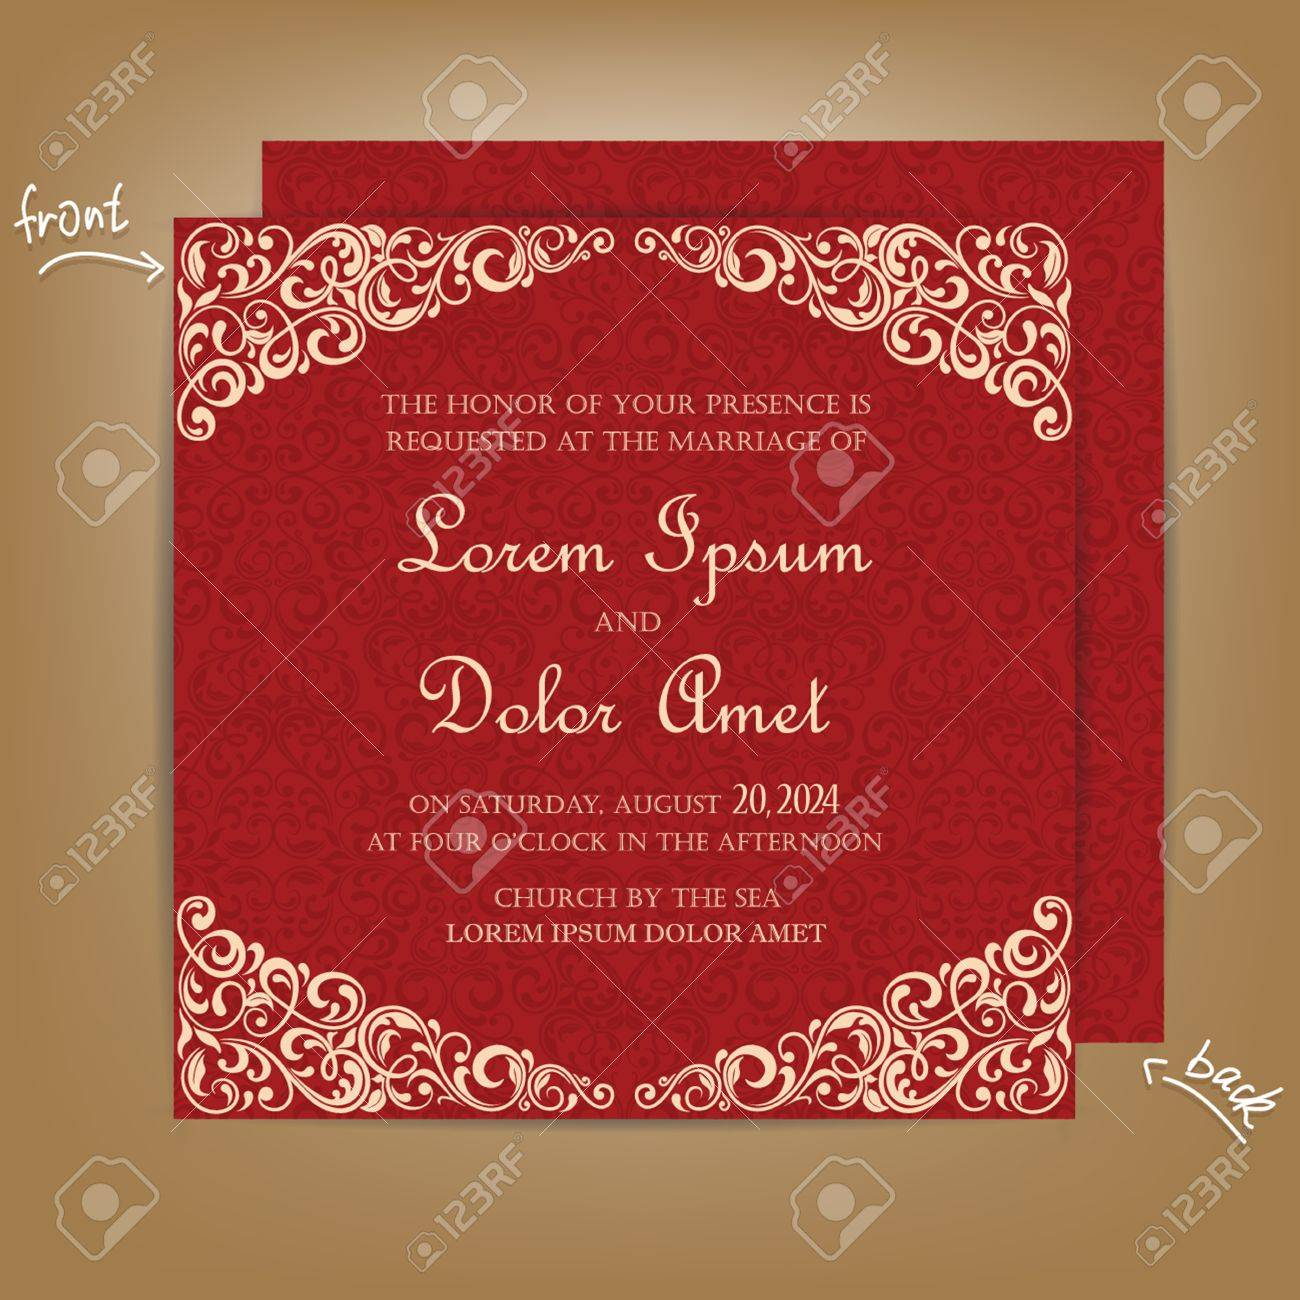 Red vintage wedding invitation card royalty free cliparts vetores imagens red vintage wedding invitation card stopboris